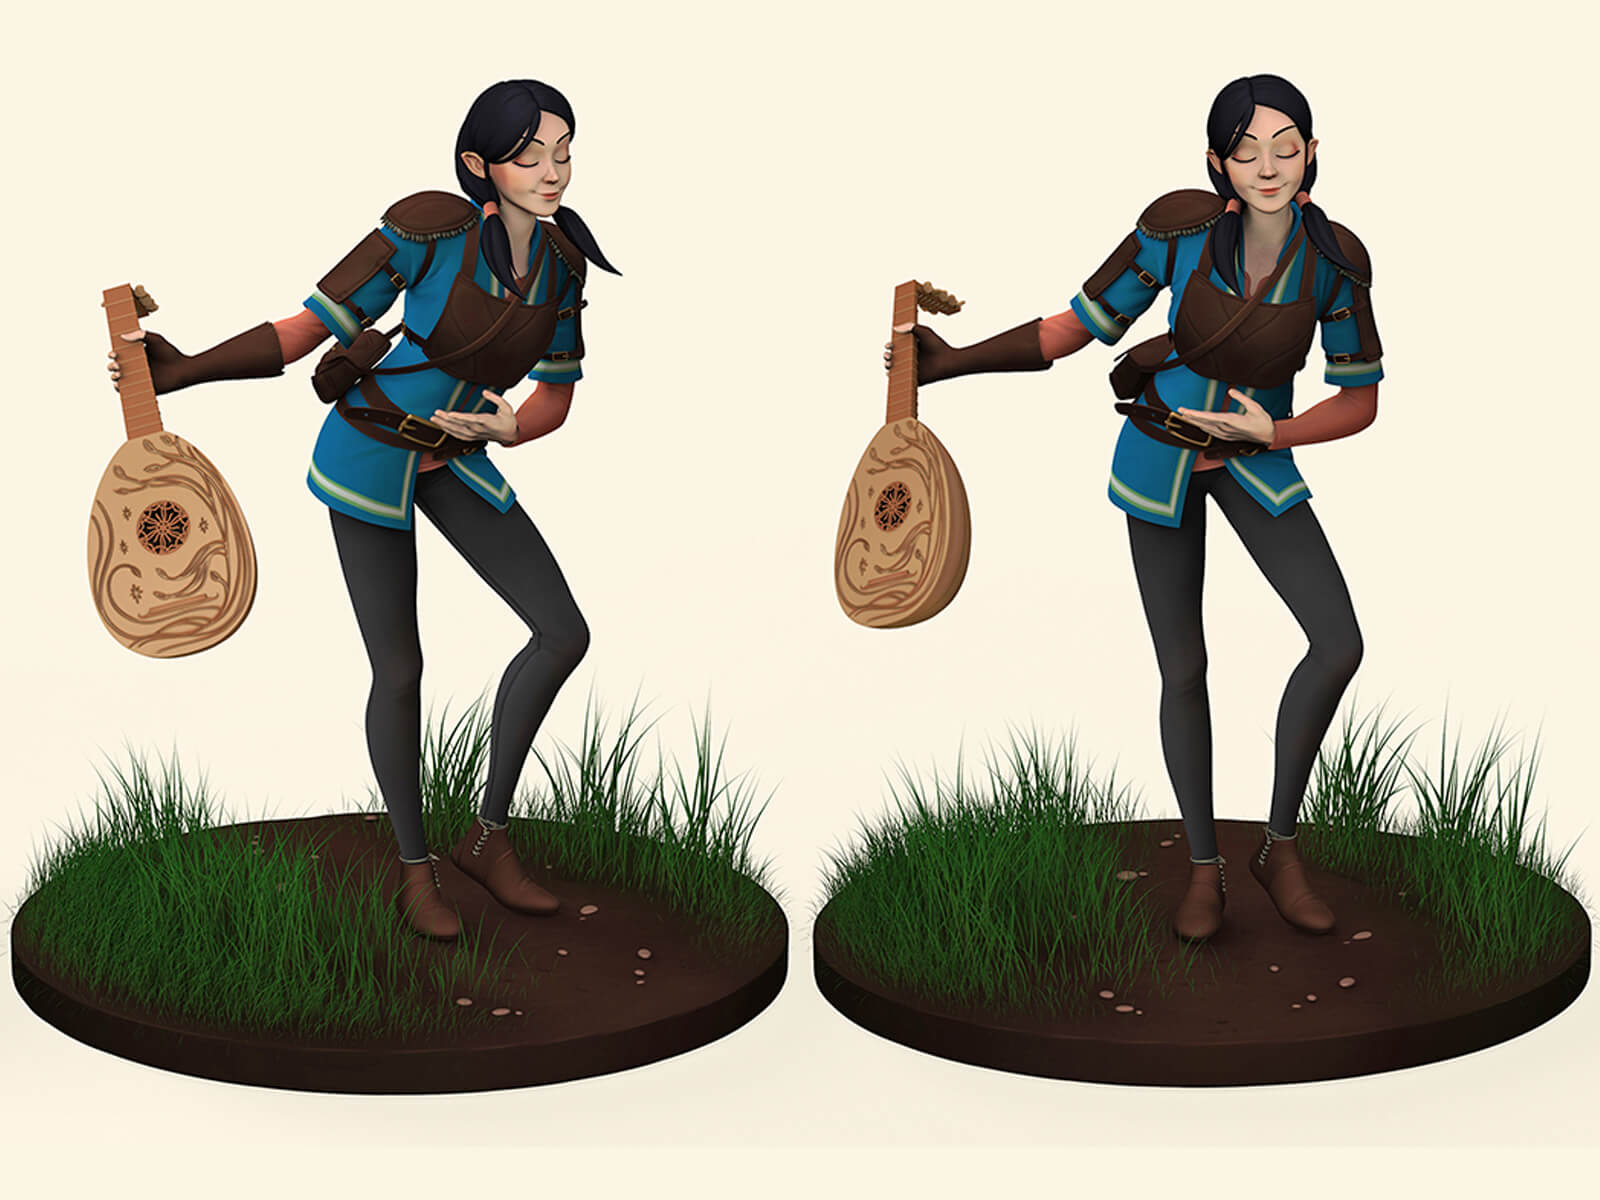 2 views of a computer-generated 3D female character taking a bow with a guitar: partial profile and head-on